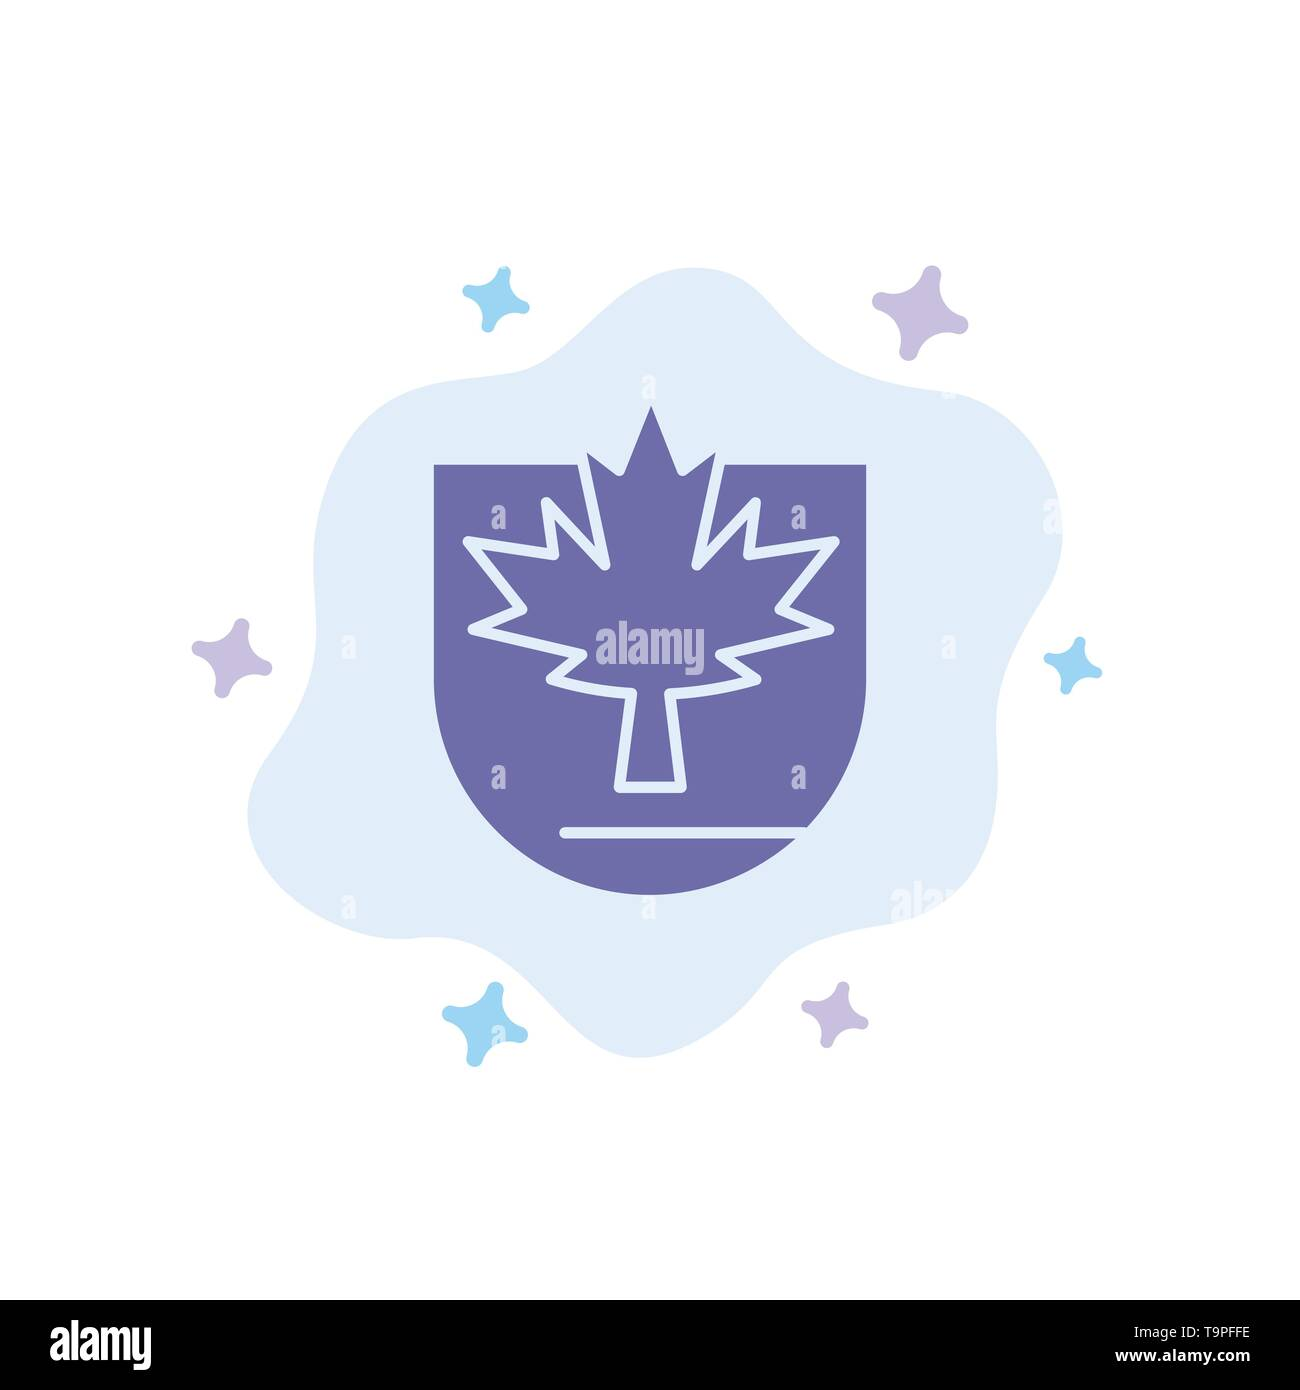 Security, Leaf, Canada, Shield Blue Icon on Abstract Cloud Background - Stock Image